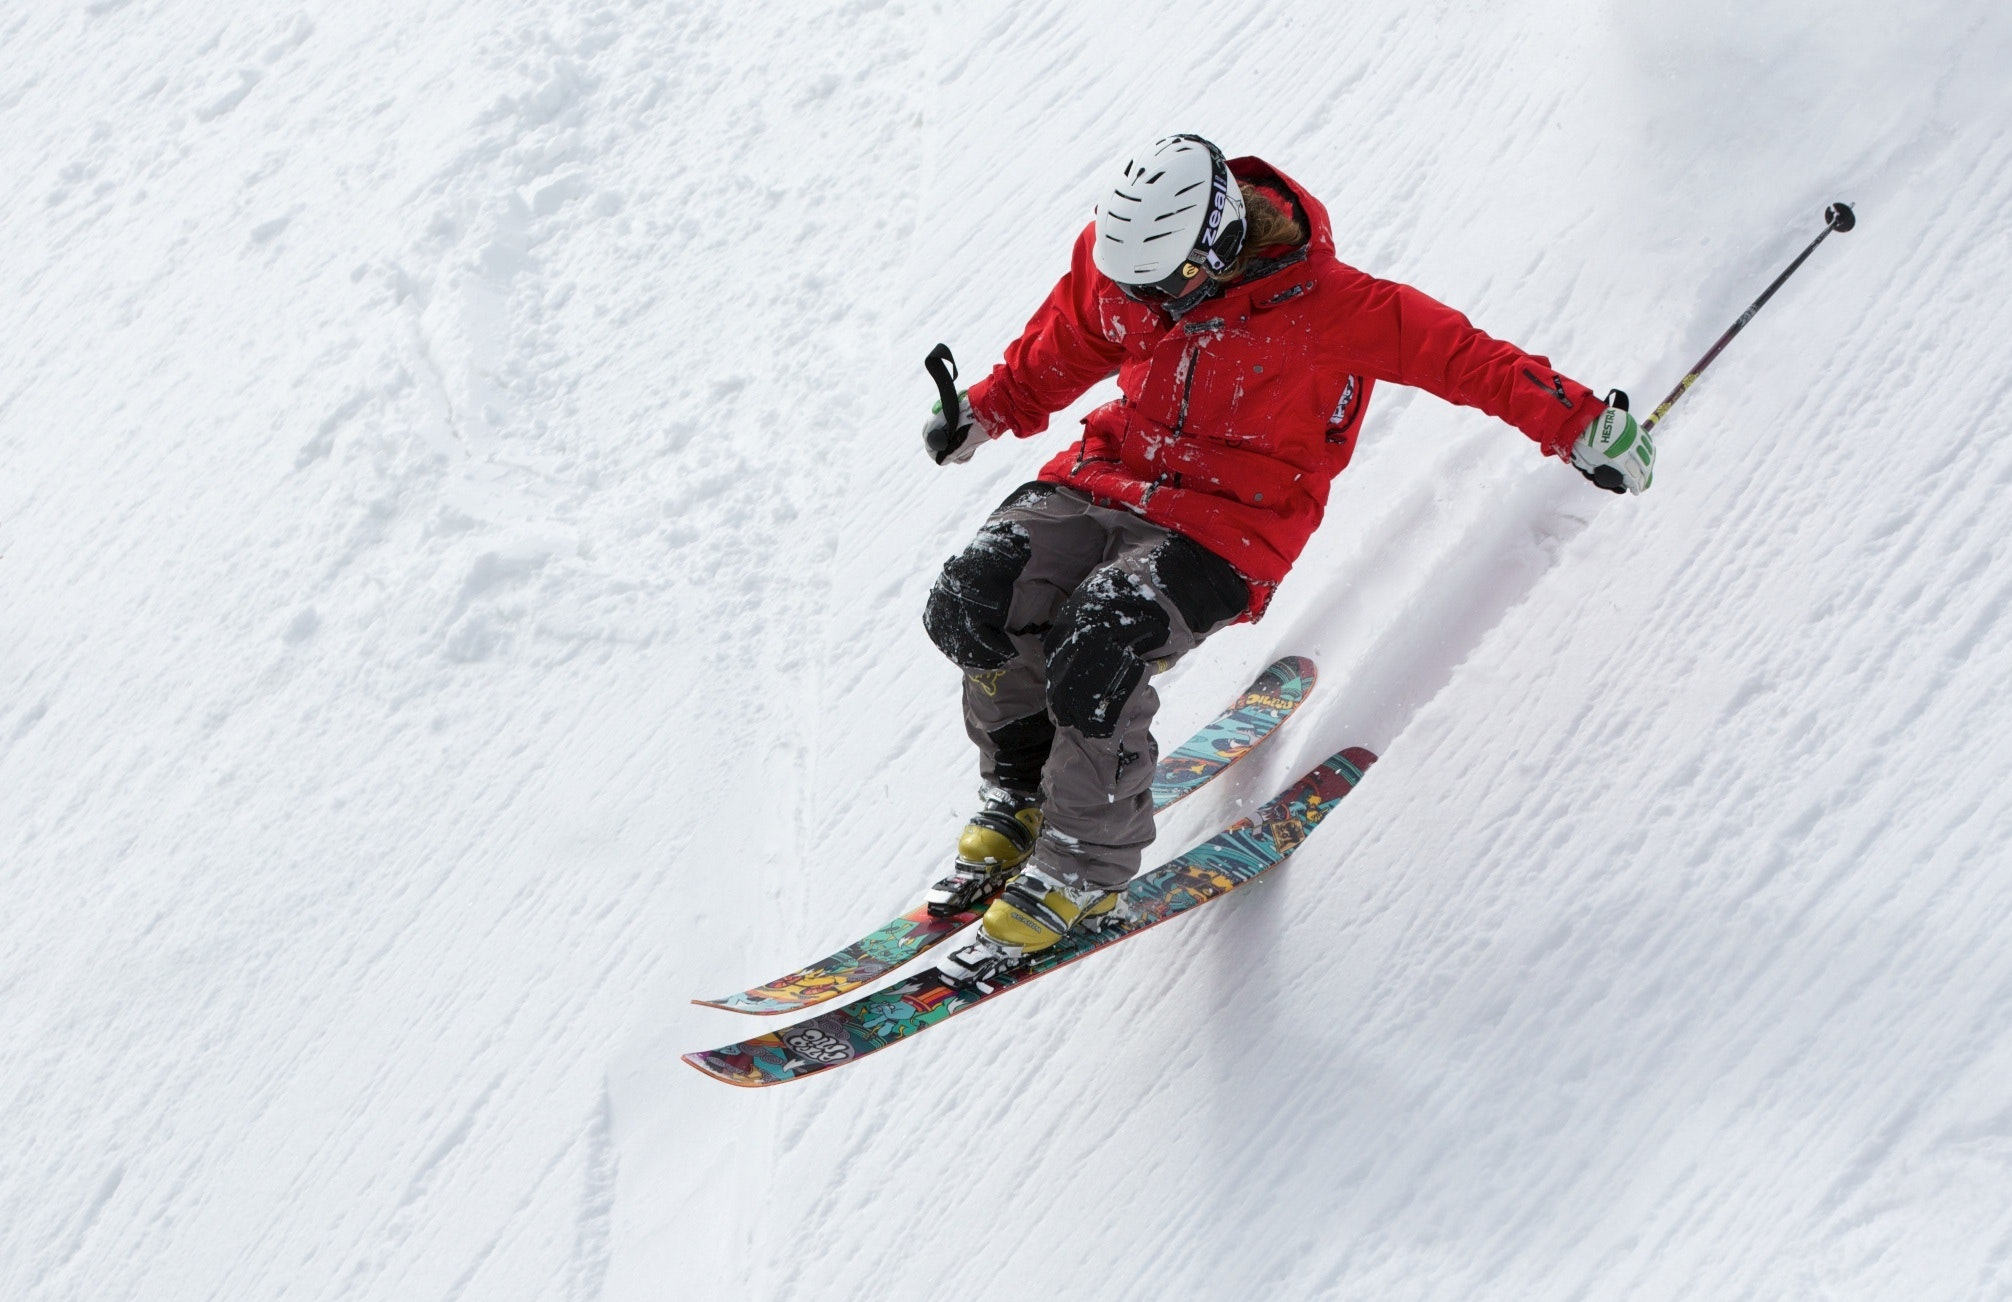 man in red jacket skiing down slope